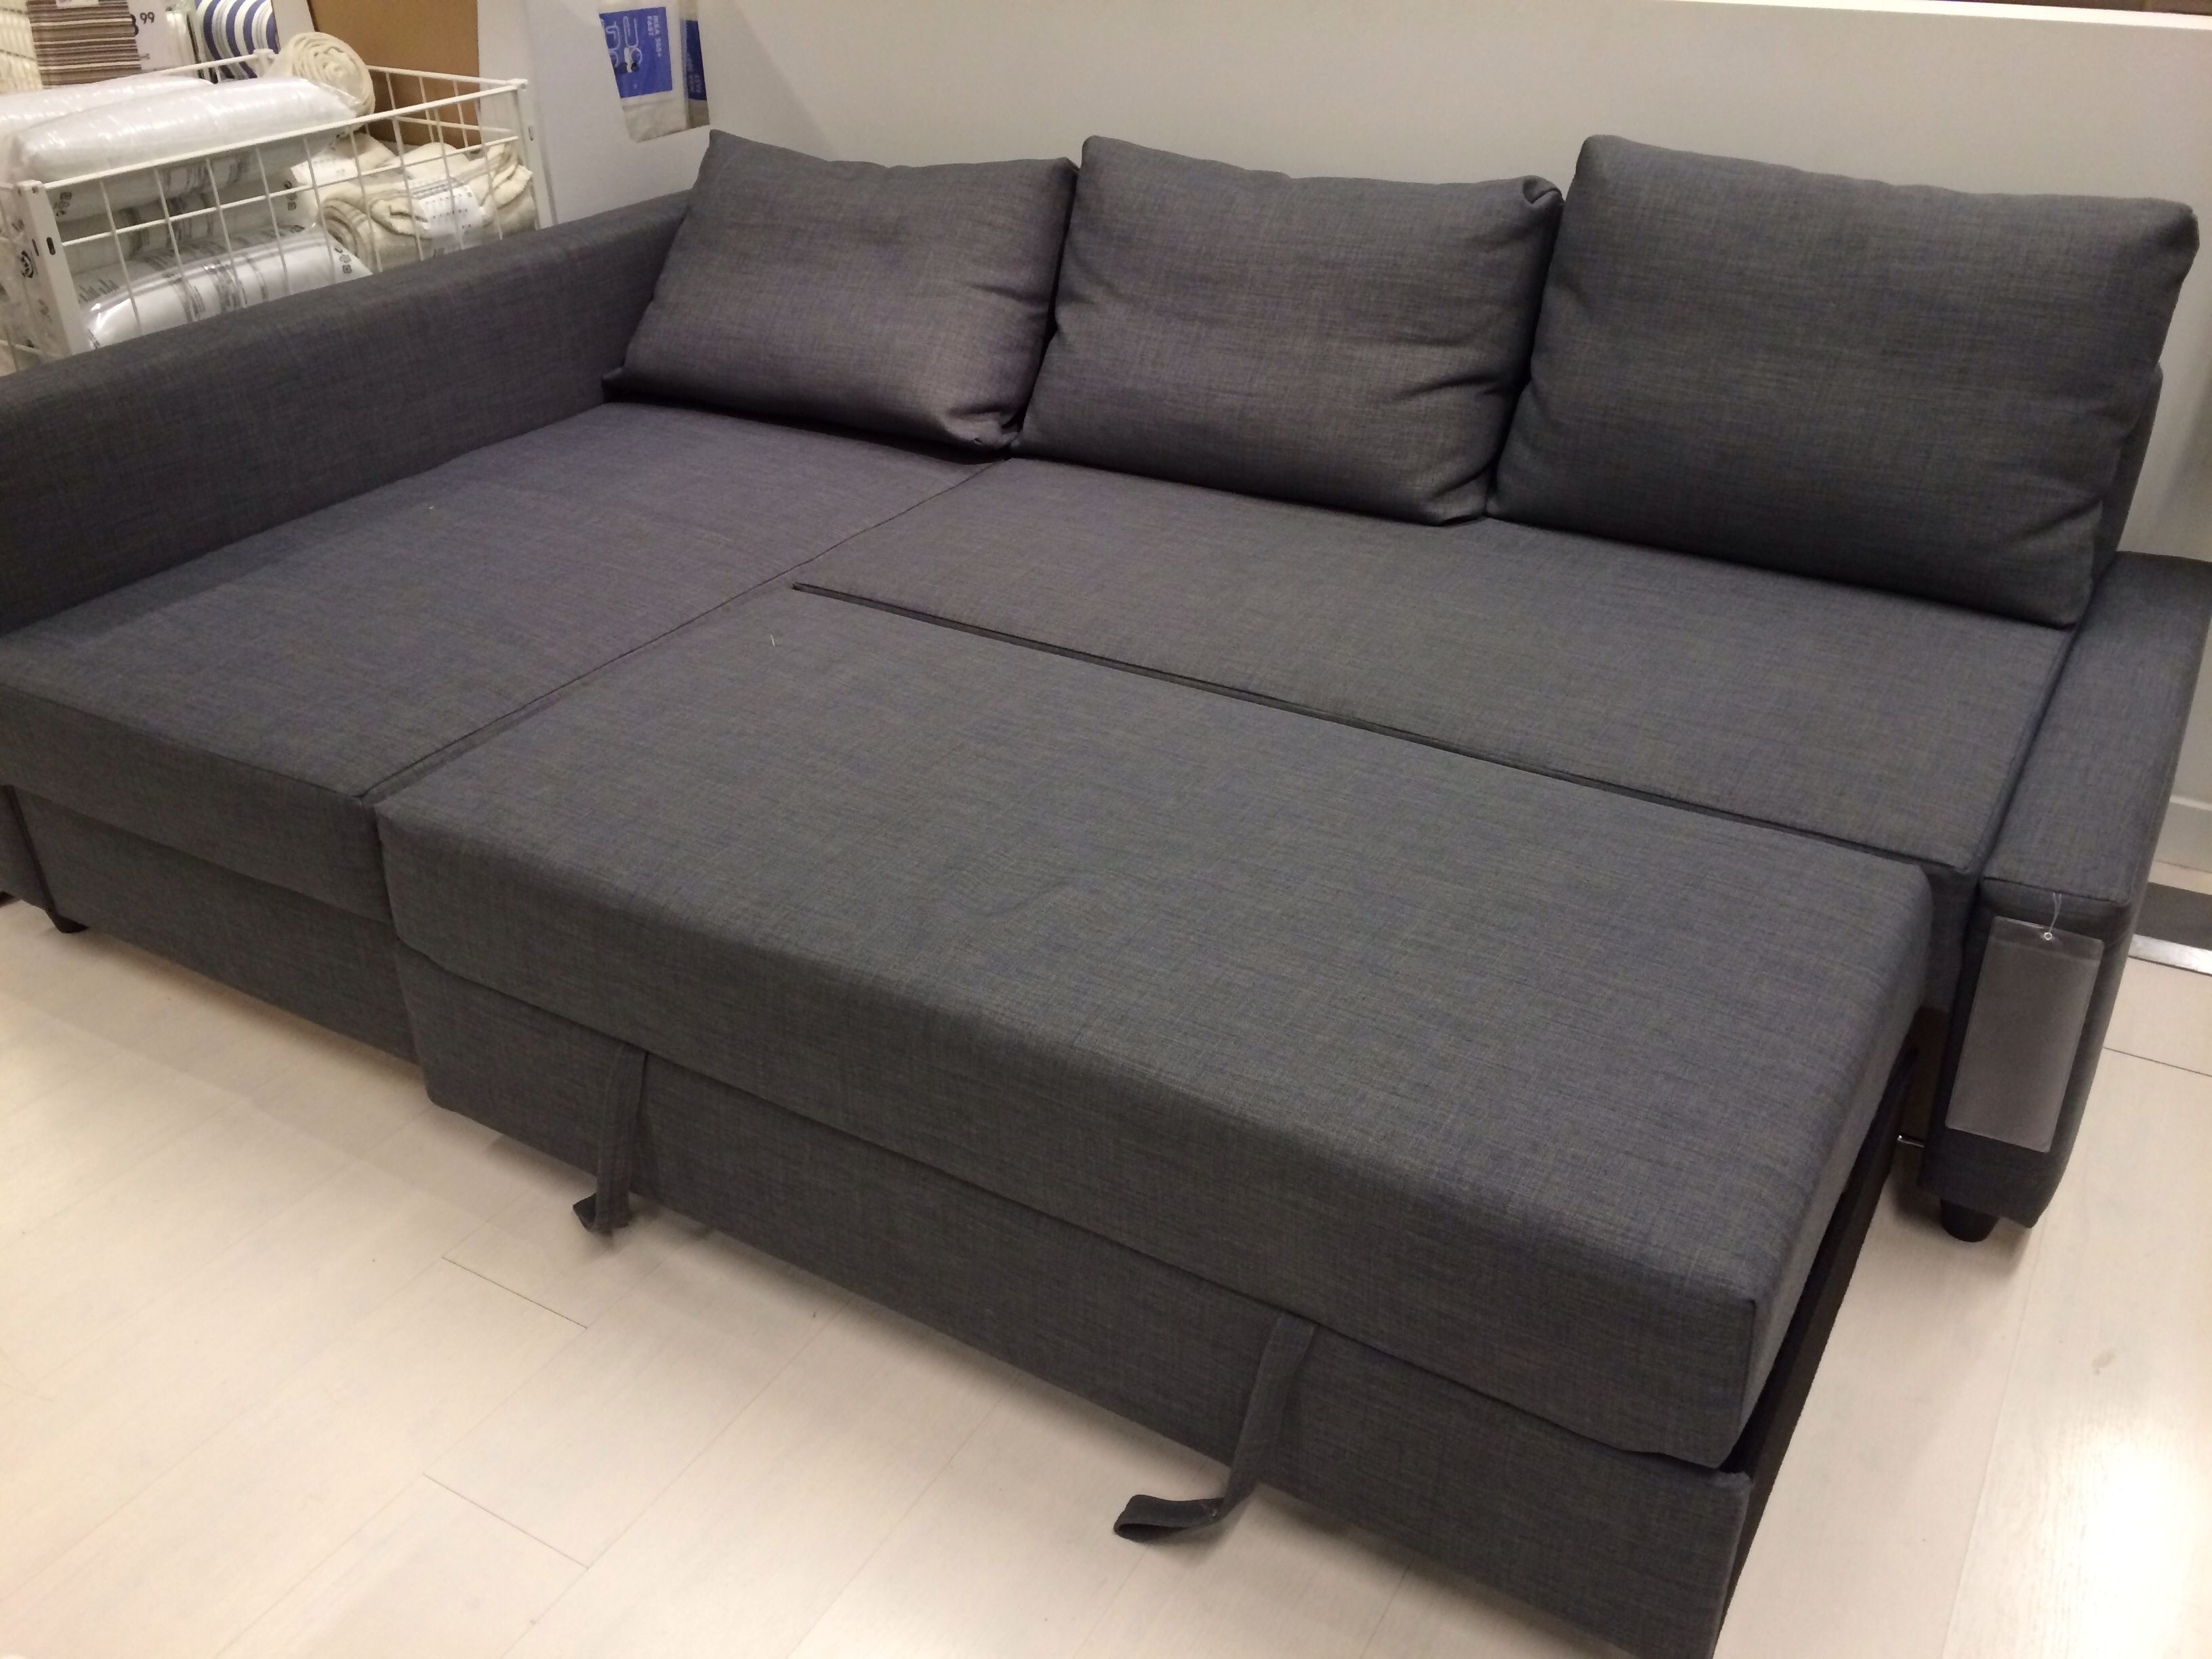 Esstisch Sofa Ikea Friheten Corner Sofa Bed Skiftebo Dark Grey Ikea For